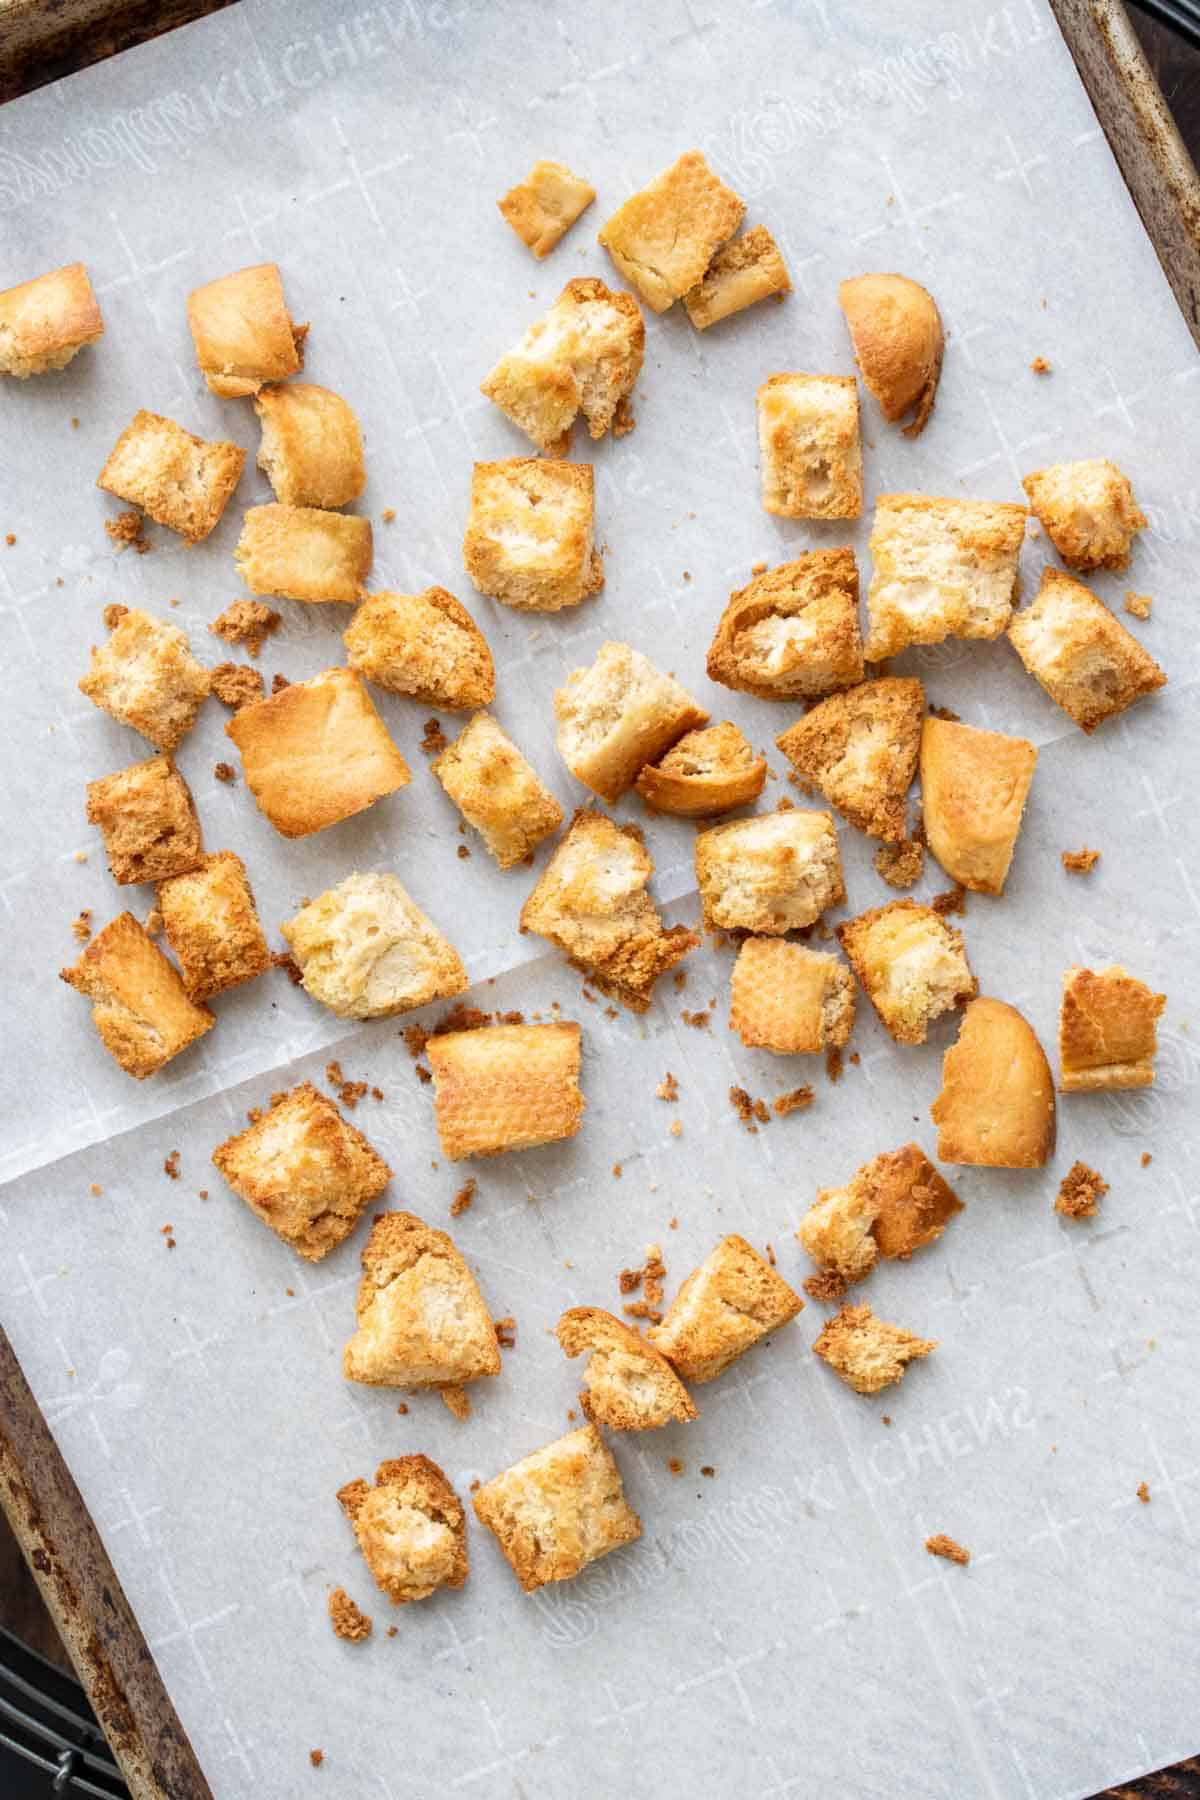 Top view of baked croutons on a piece of parchment